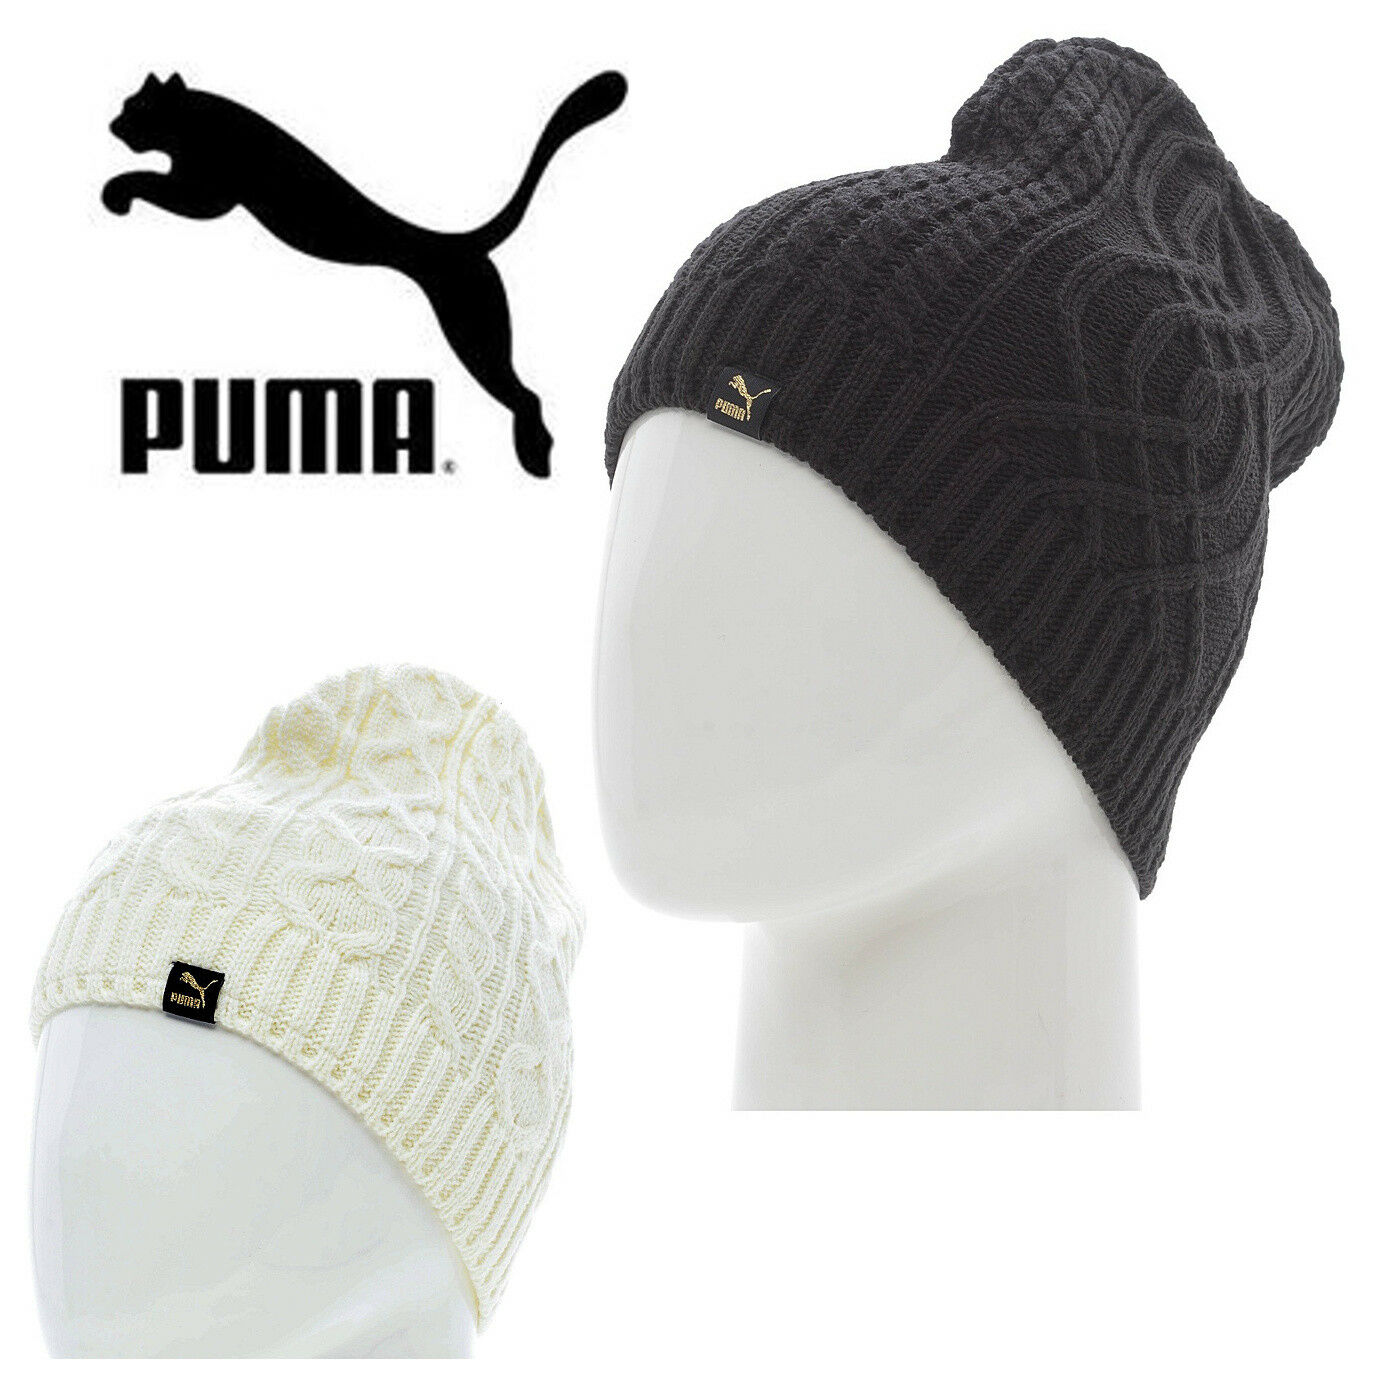 902b8dffbec3e Details about PUMA Mens Mele Cable Knit Beanie Hat Fleece Lined Winter Hats  CLEARANCE SALE